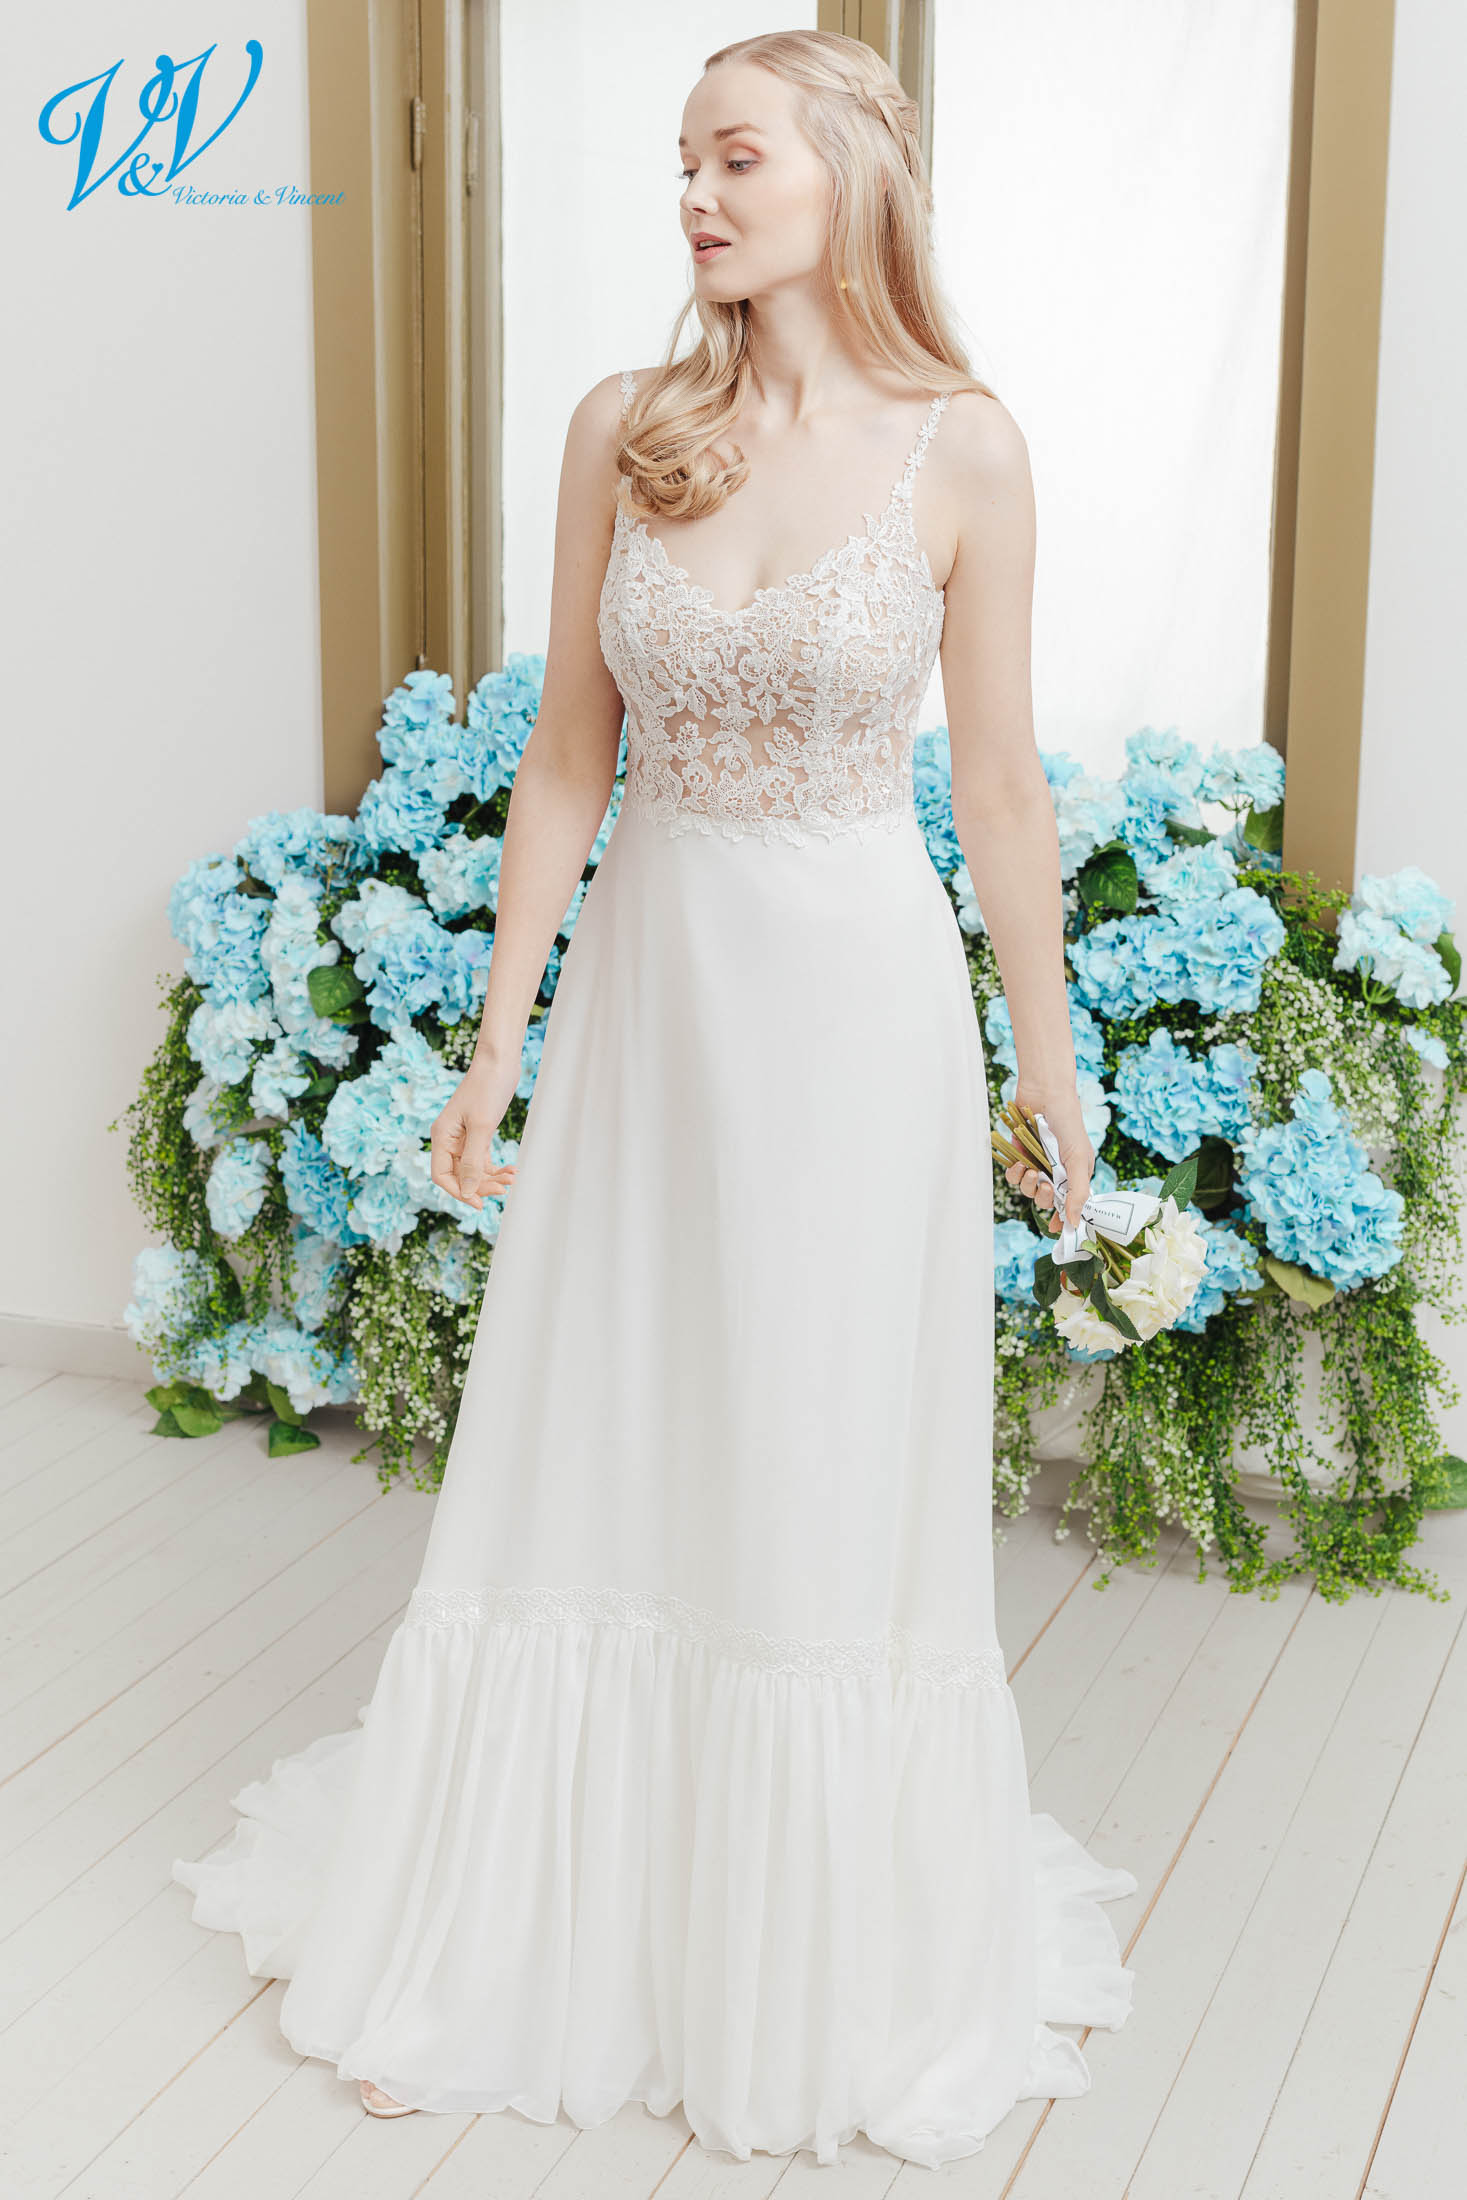 A chiffon wedding gown with gorgeous lace details. This backless bridal dress will make you feel sexy with a boho touch. Color in the picture is ivory / nude but this bridal gown is also available in all ivory and white.